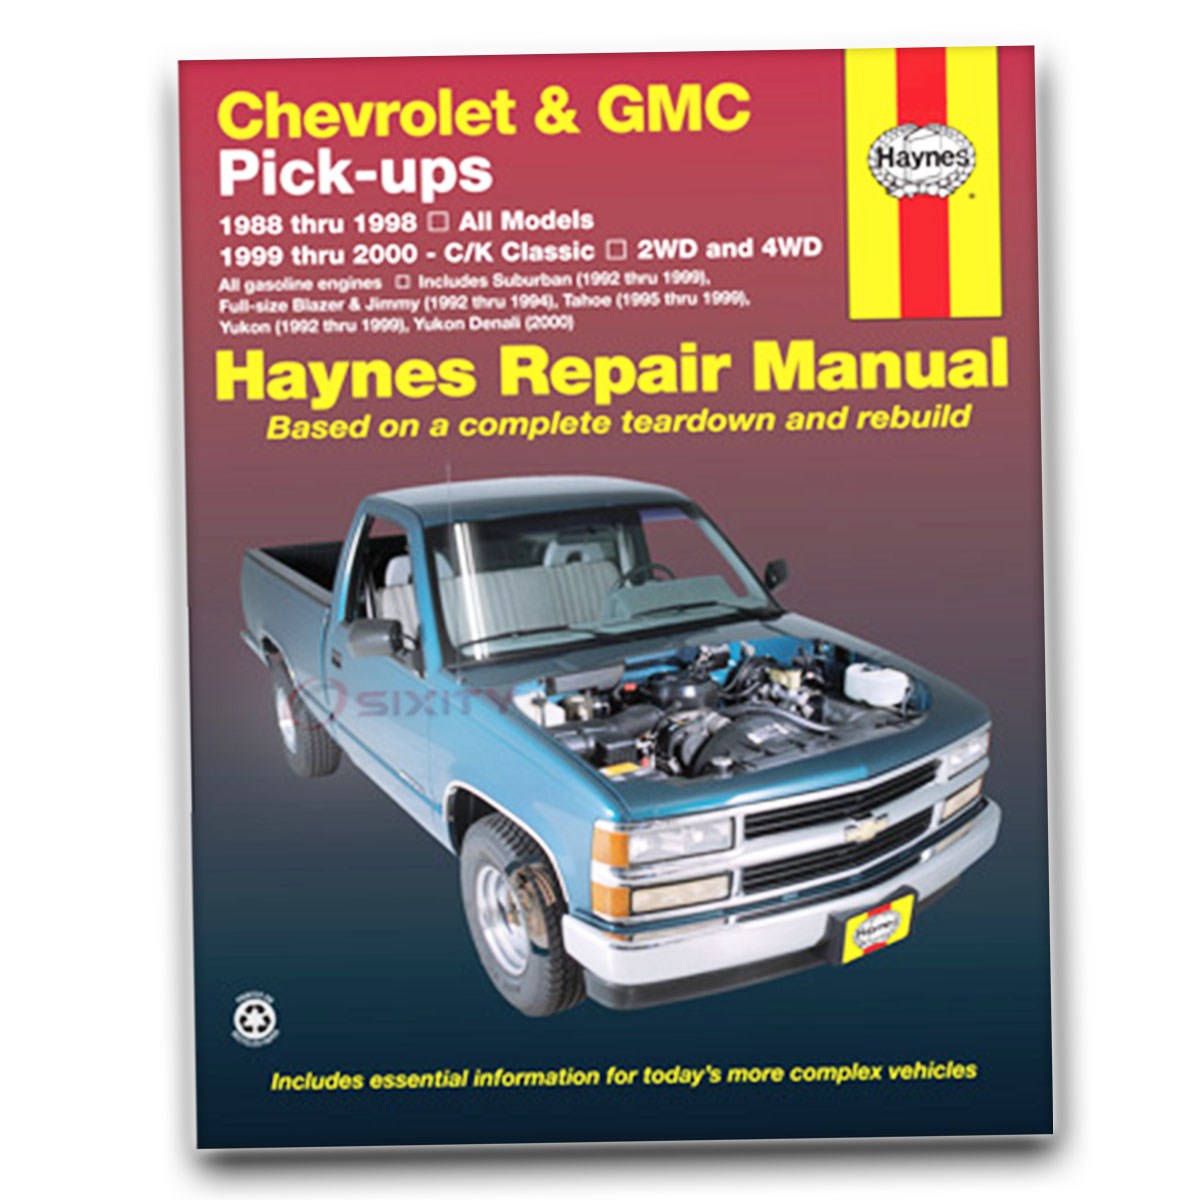 2000 chevy blazer service manual browse manual guides u2022 rh trufflefries co 2005 Chevy Truck Repair Manual 2011 Chevrolet Impala Repair Information